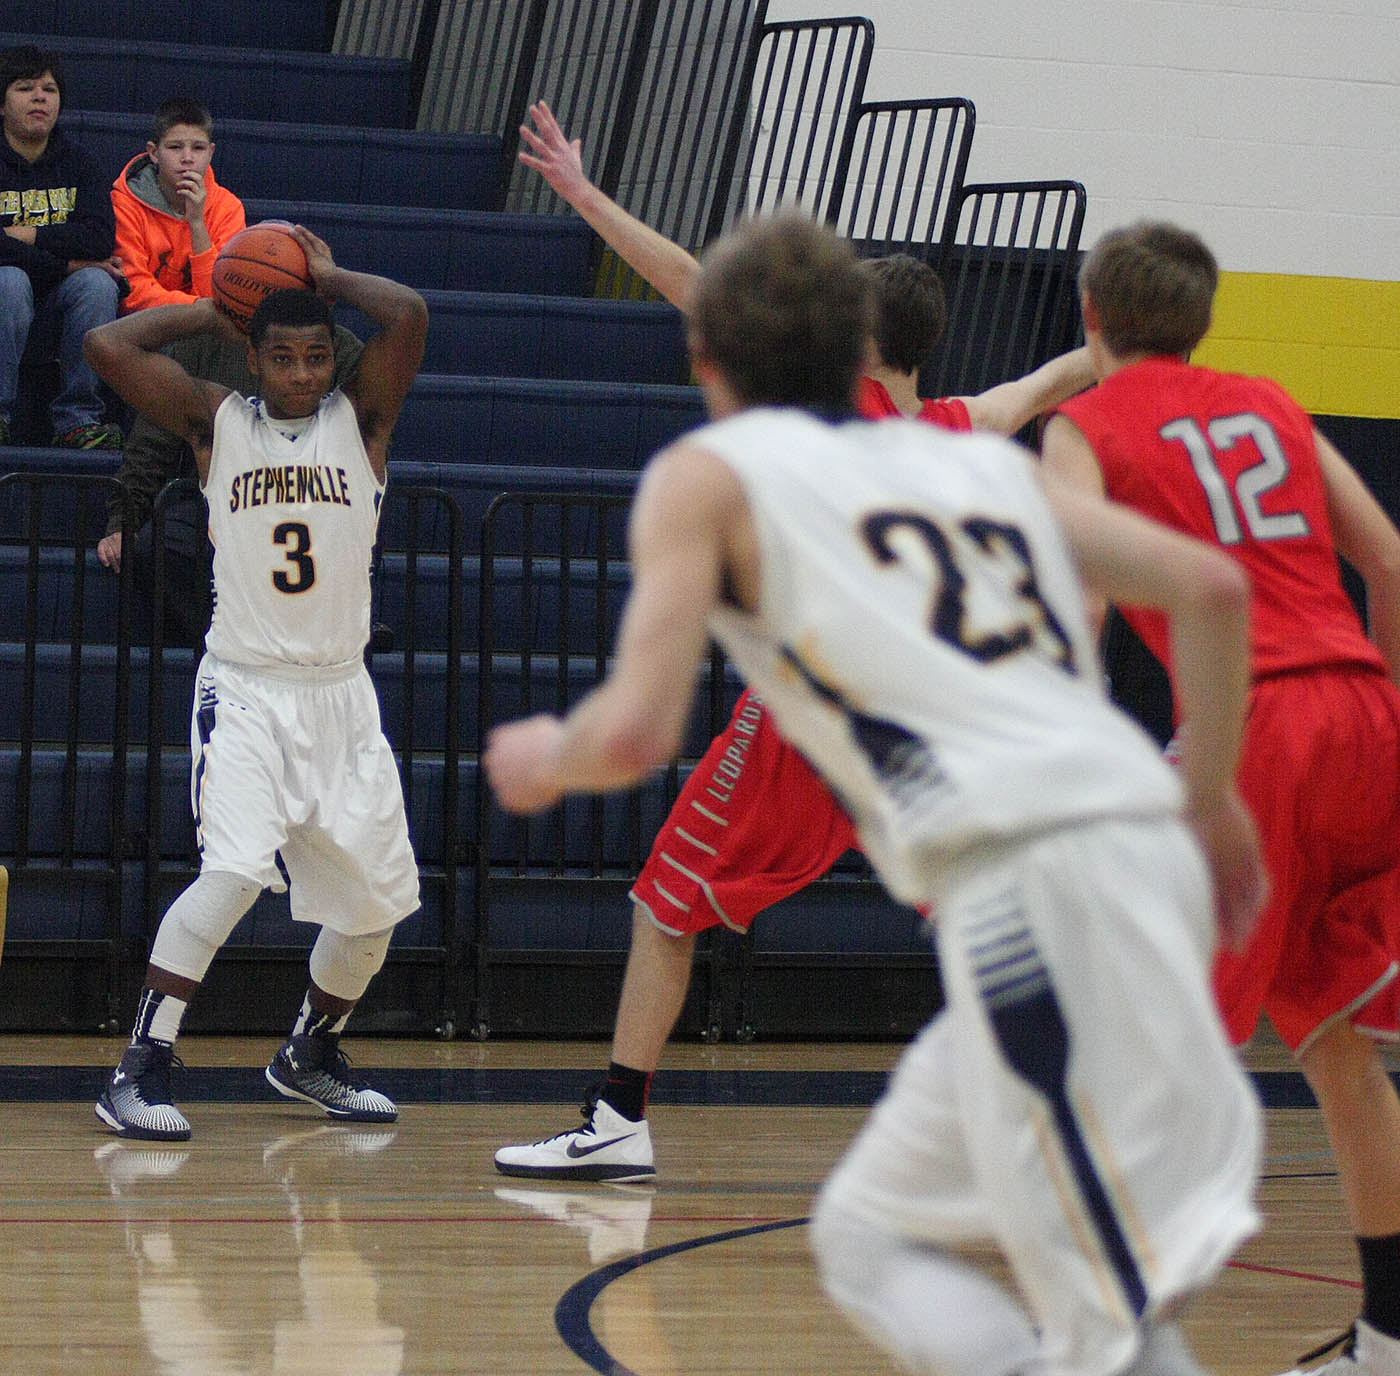 Darian Brown scored 14 points for Stephenville and Waco LaVega Tuesday. || Photo by BRAD KEITH